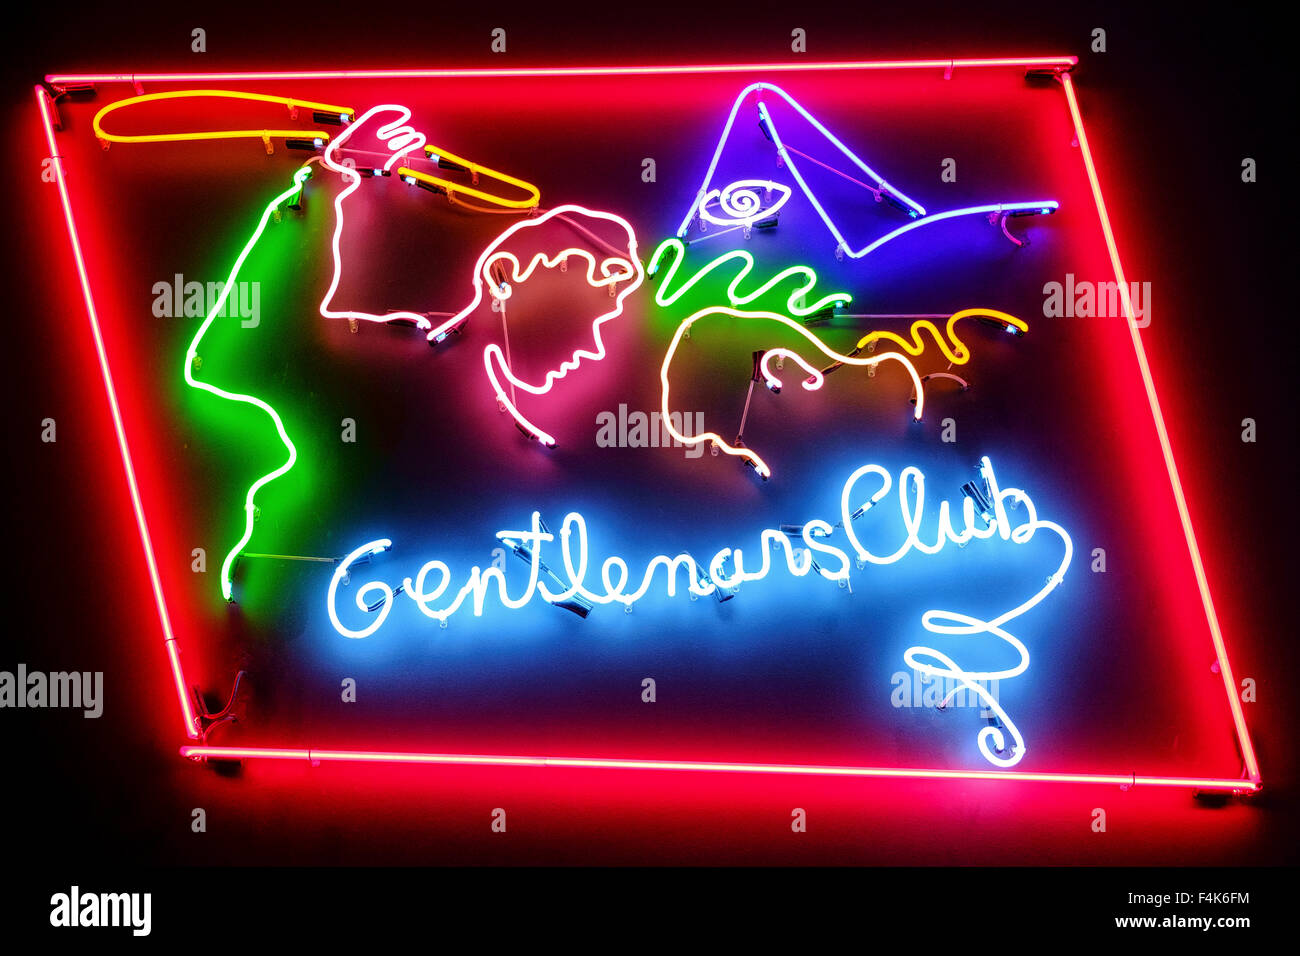 gentlemans club neon sign advertisement gentlemens - Stock Image